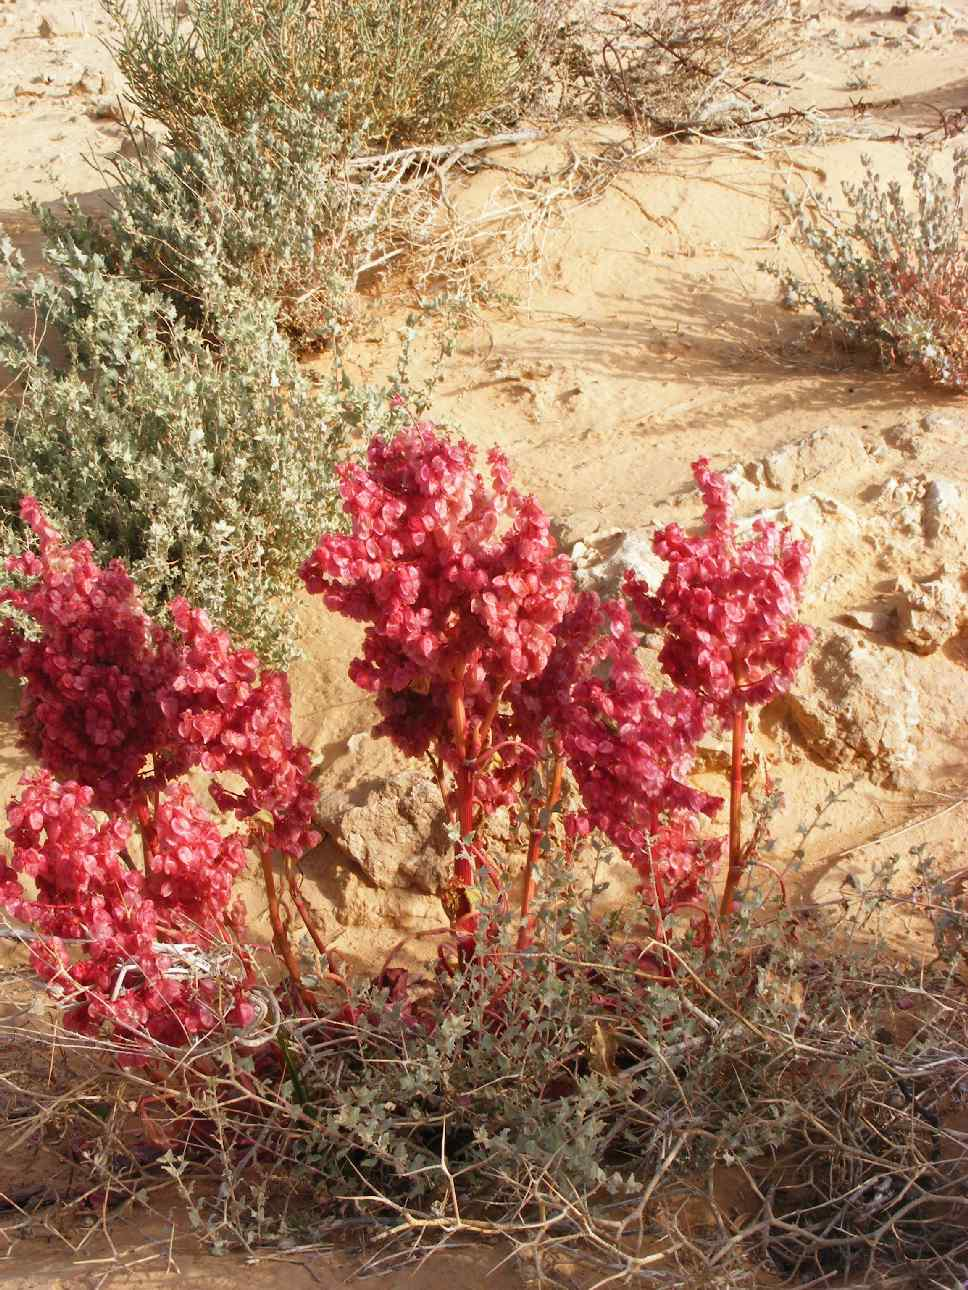 Rare red bloom in drying mud, Arava 2013